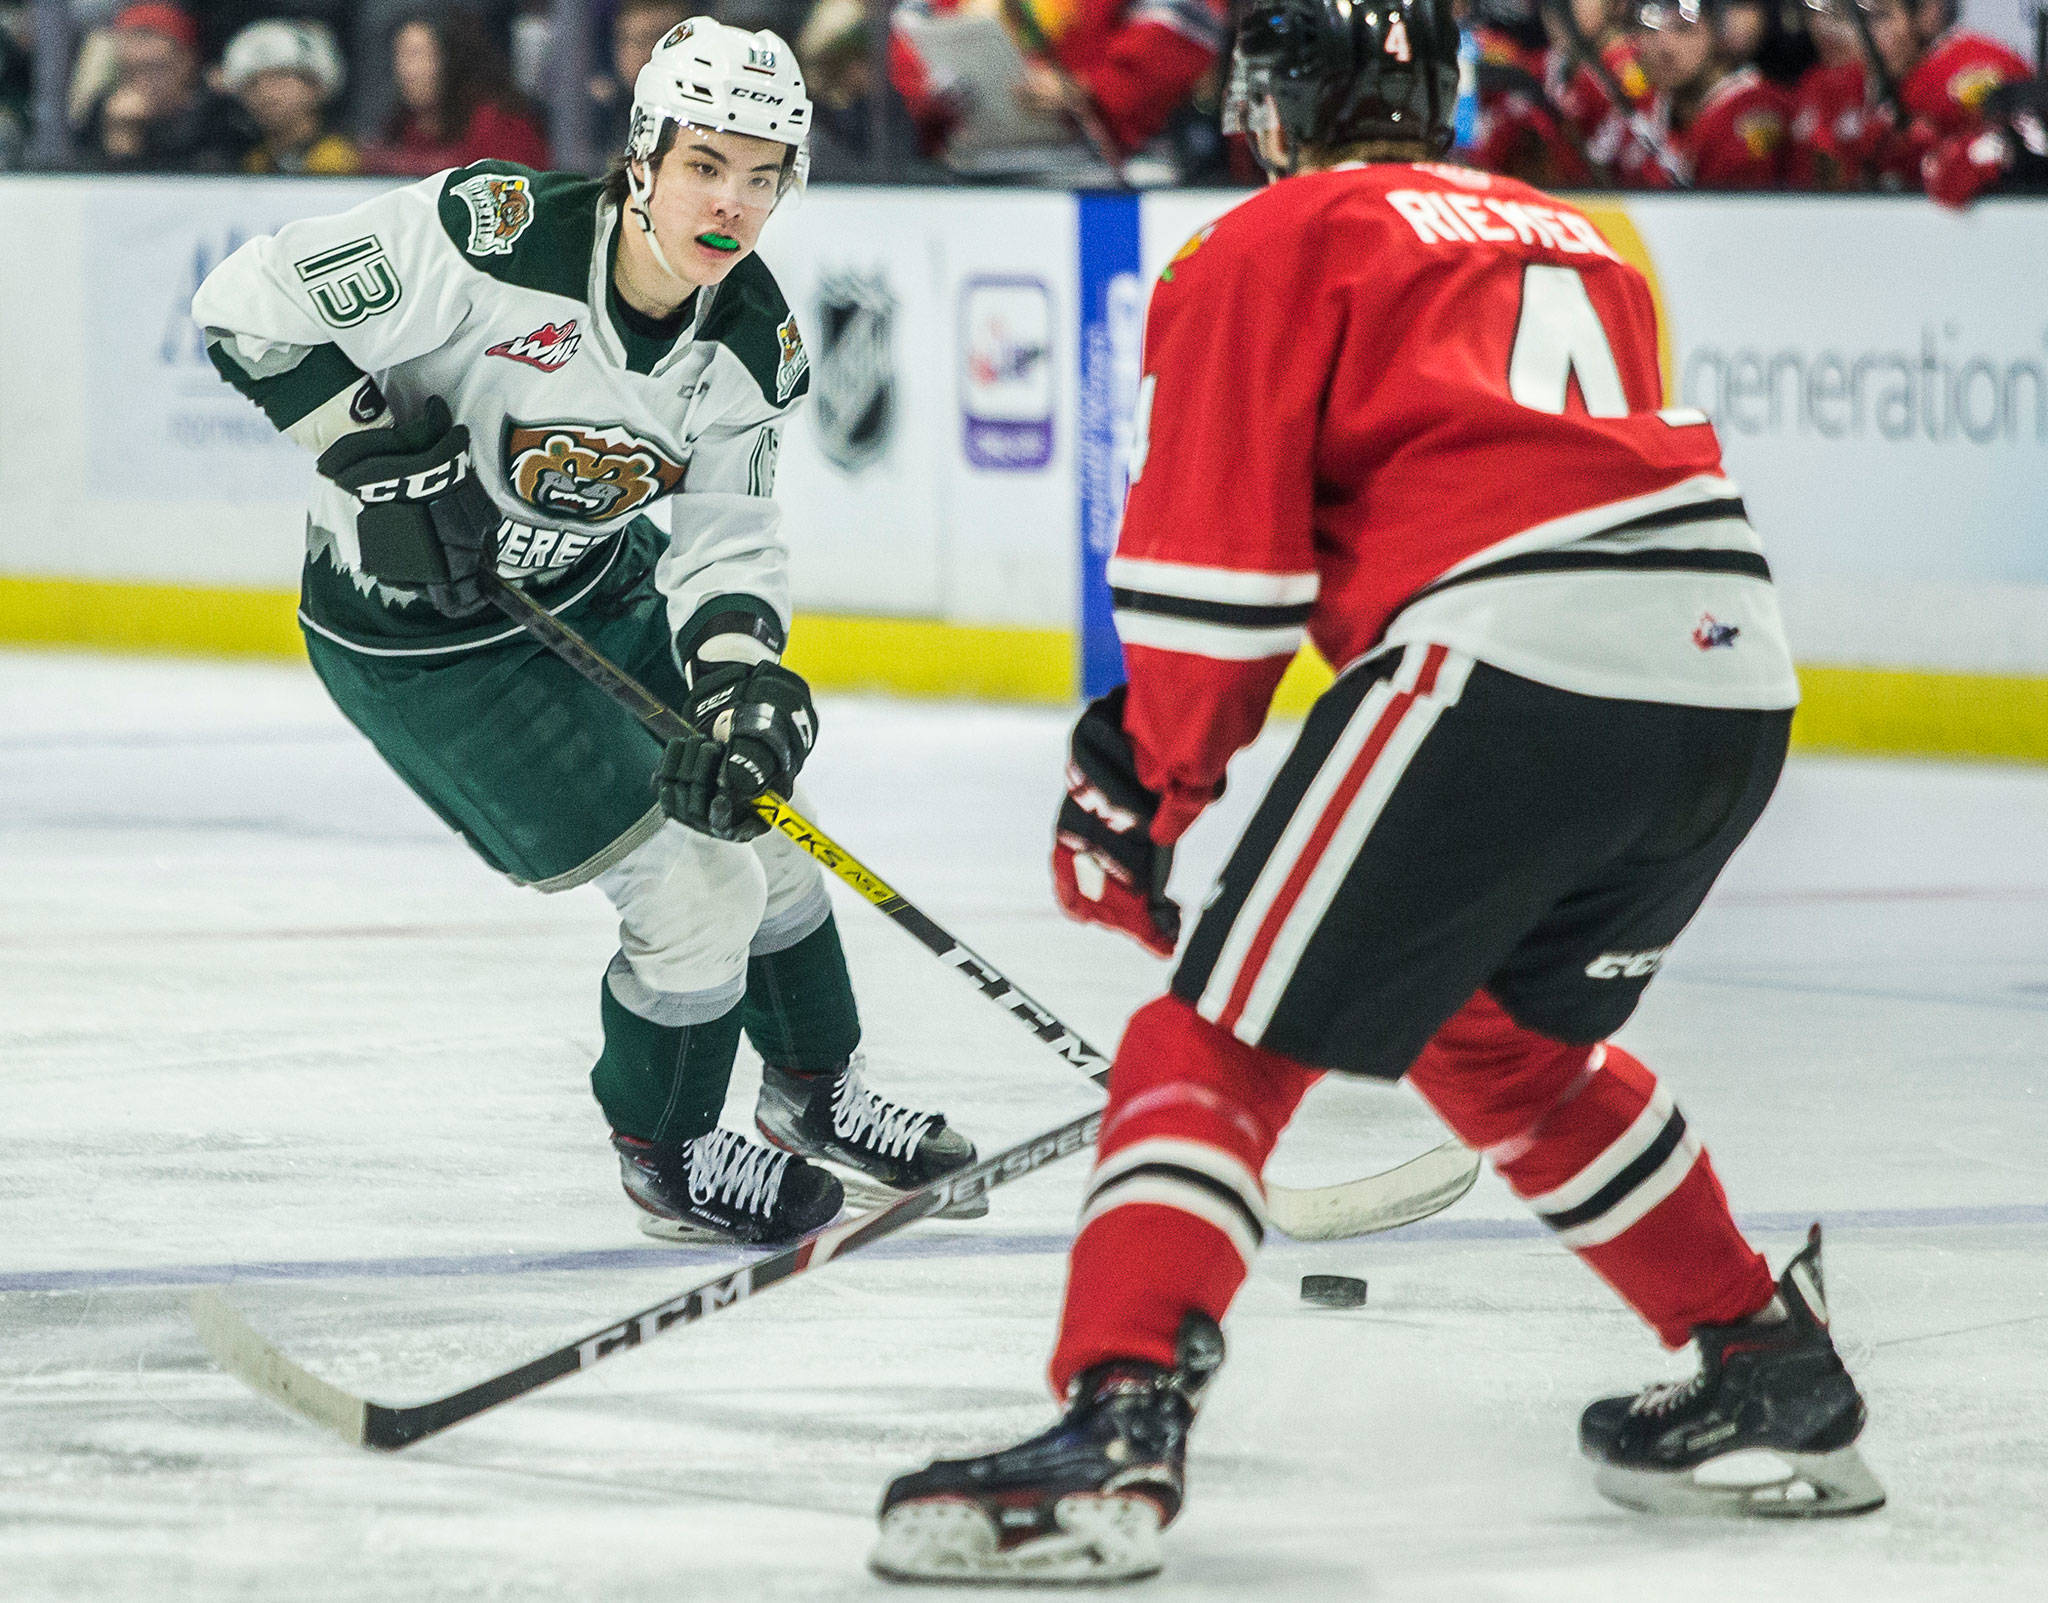 The Silvertips' Brendan Lee (left) skates with the puck during a game against the Winterhawks on March 1, 2020, in Everett. (Olivia Vanni / The Herald)